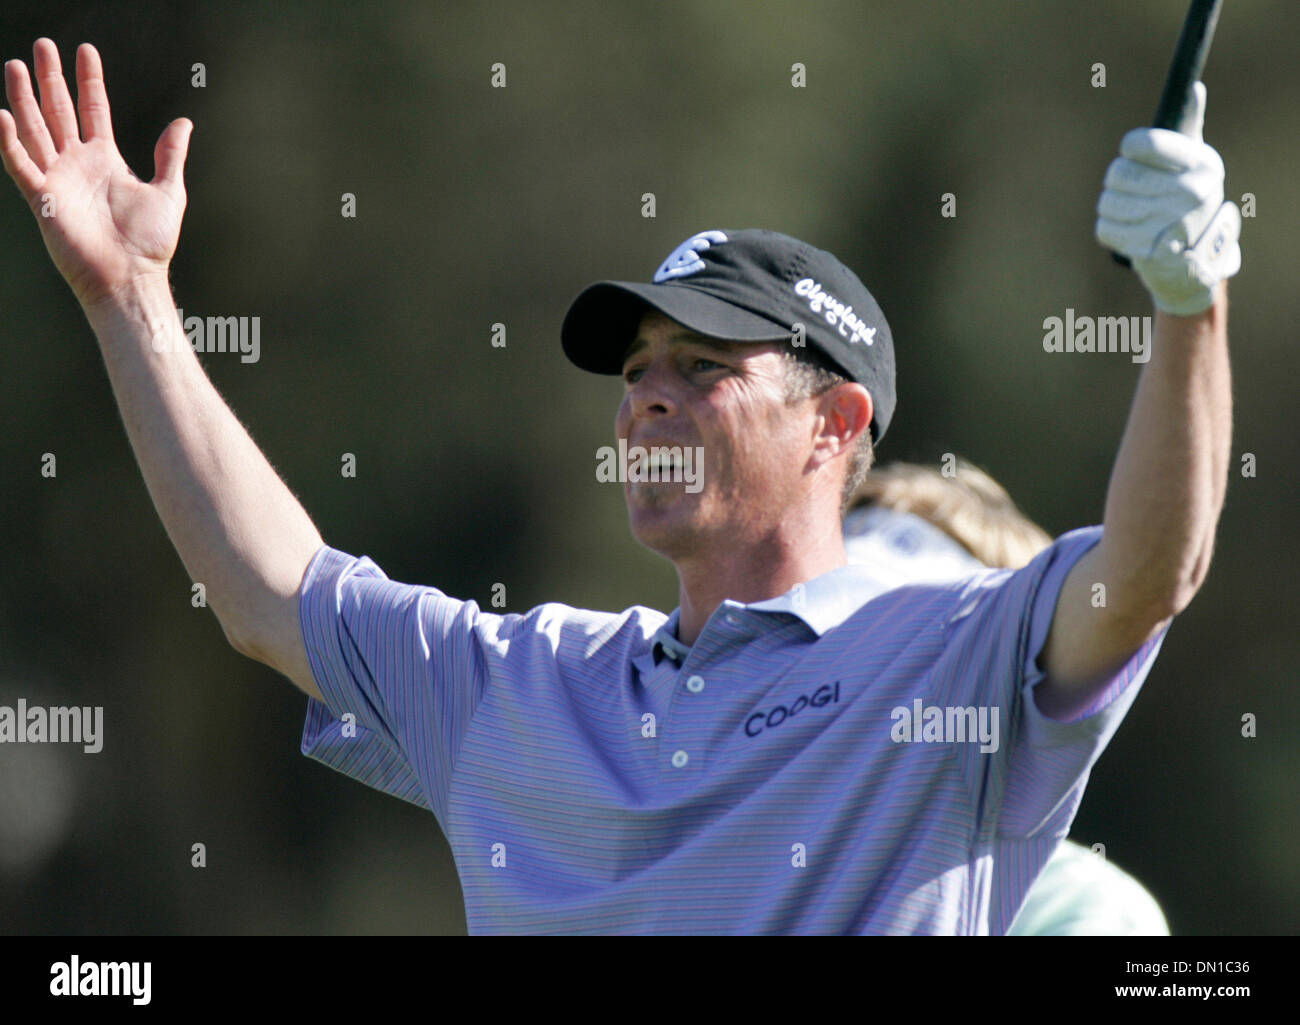 "Jan 29, 2006; La Jolla, CA, USA; GOLF: ""What's he doing?"" JONATHAN KAYE was distracted on his tee shot on 18 by Stock Photo"